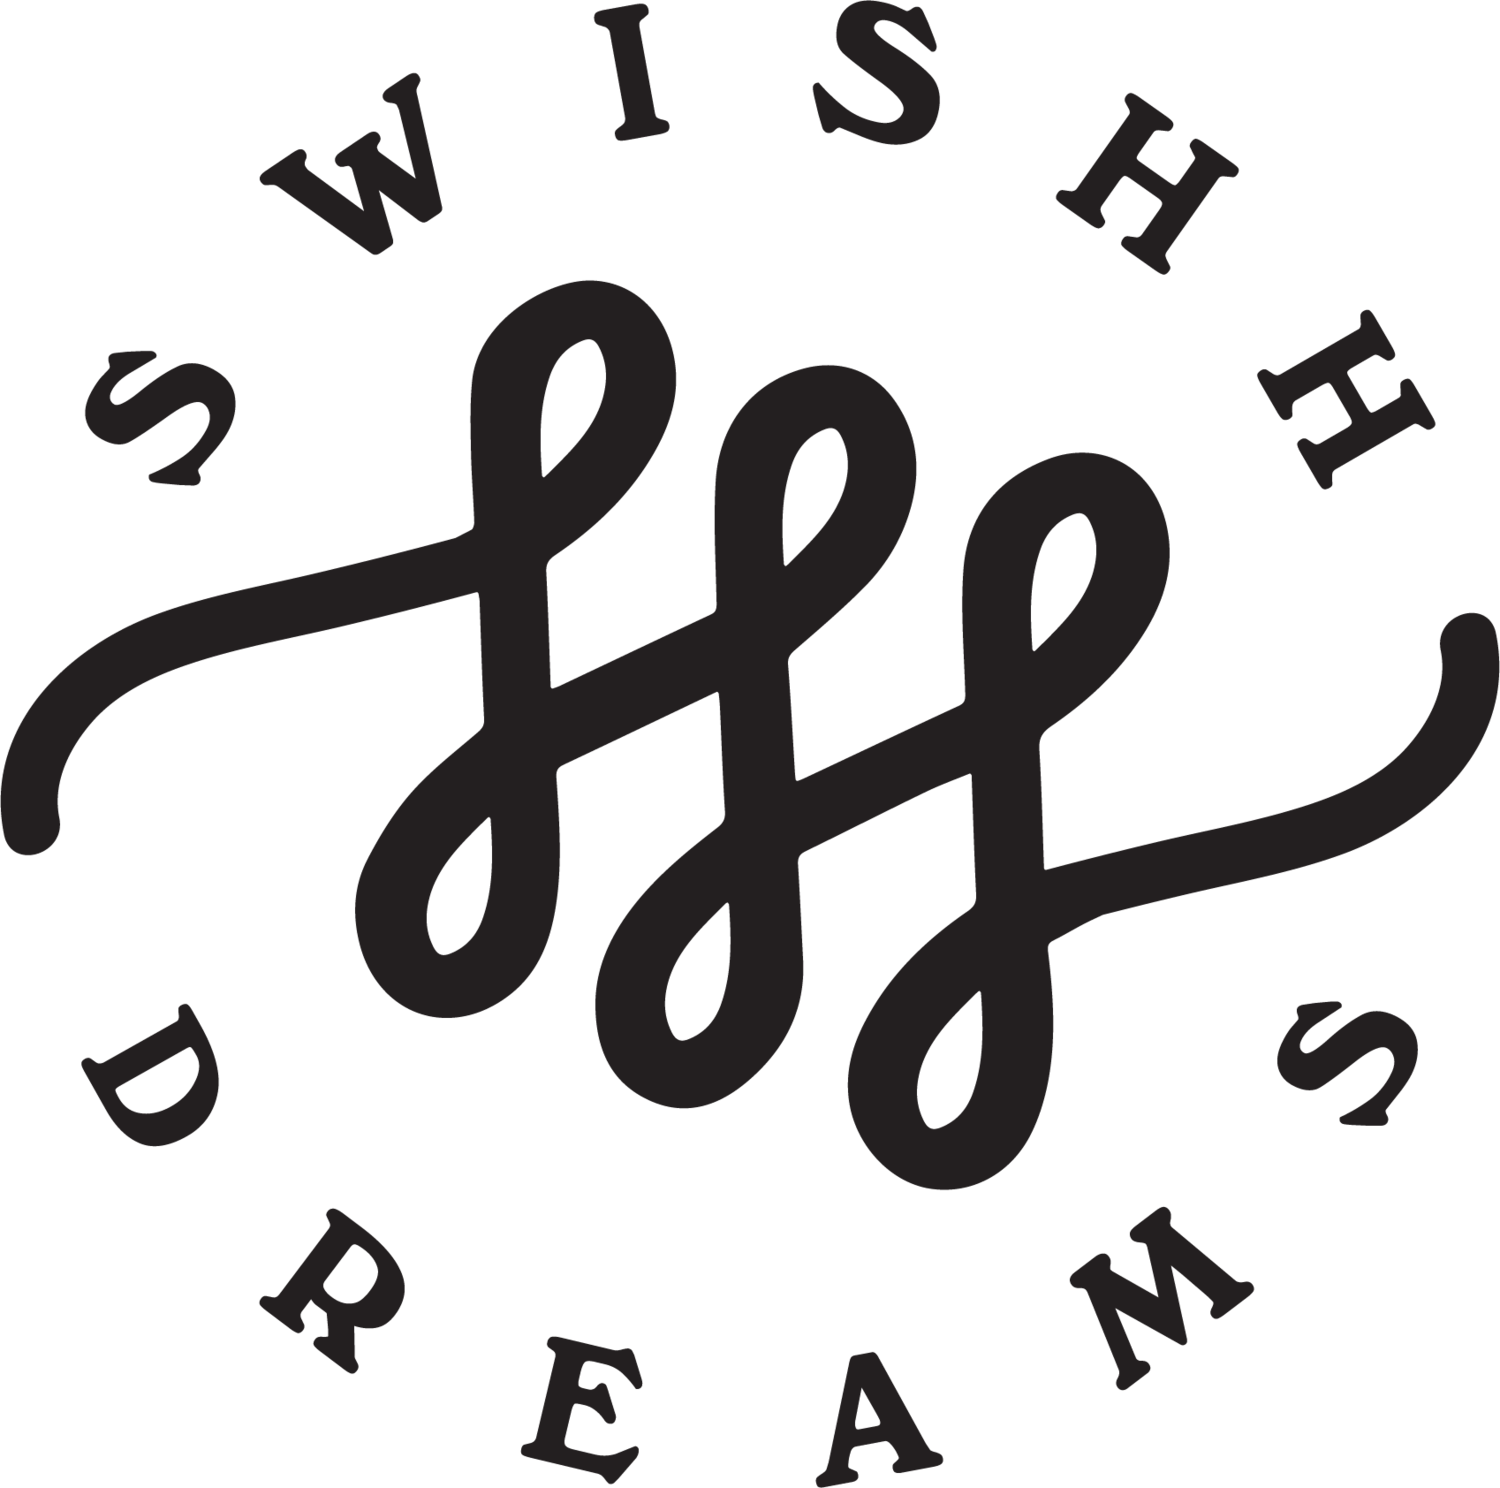 Swishh Dreams